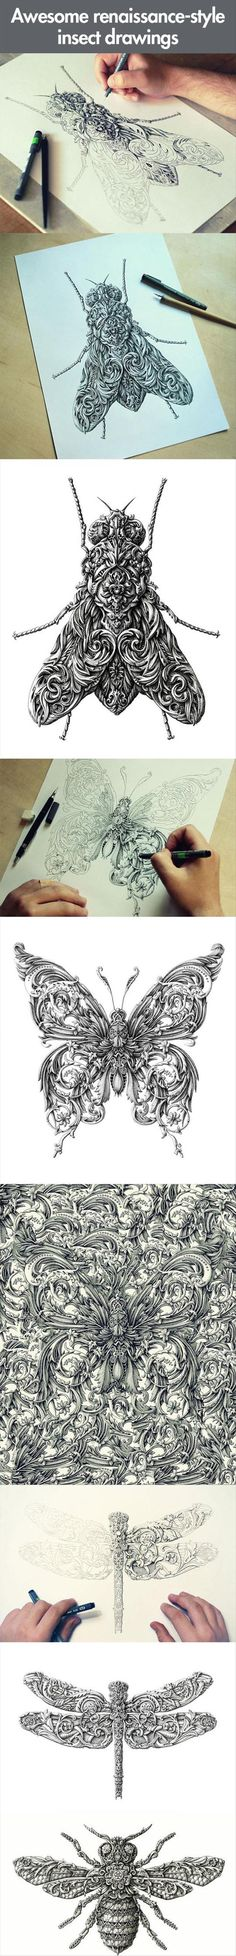 Renaissance~Style Insect Drawings